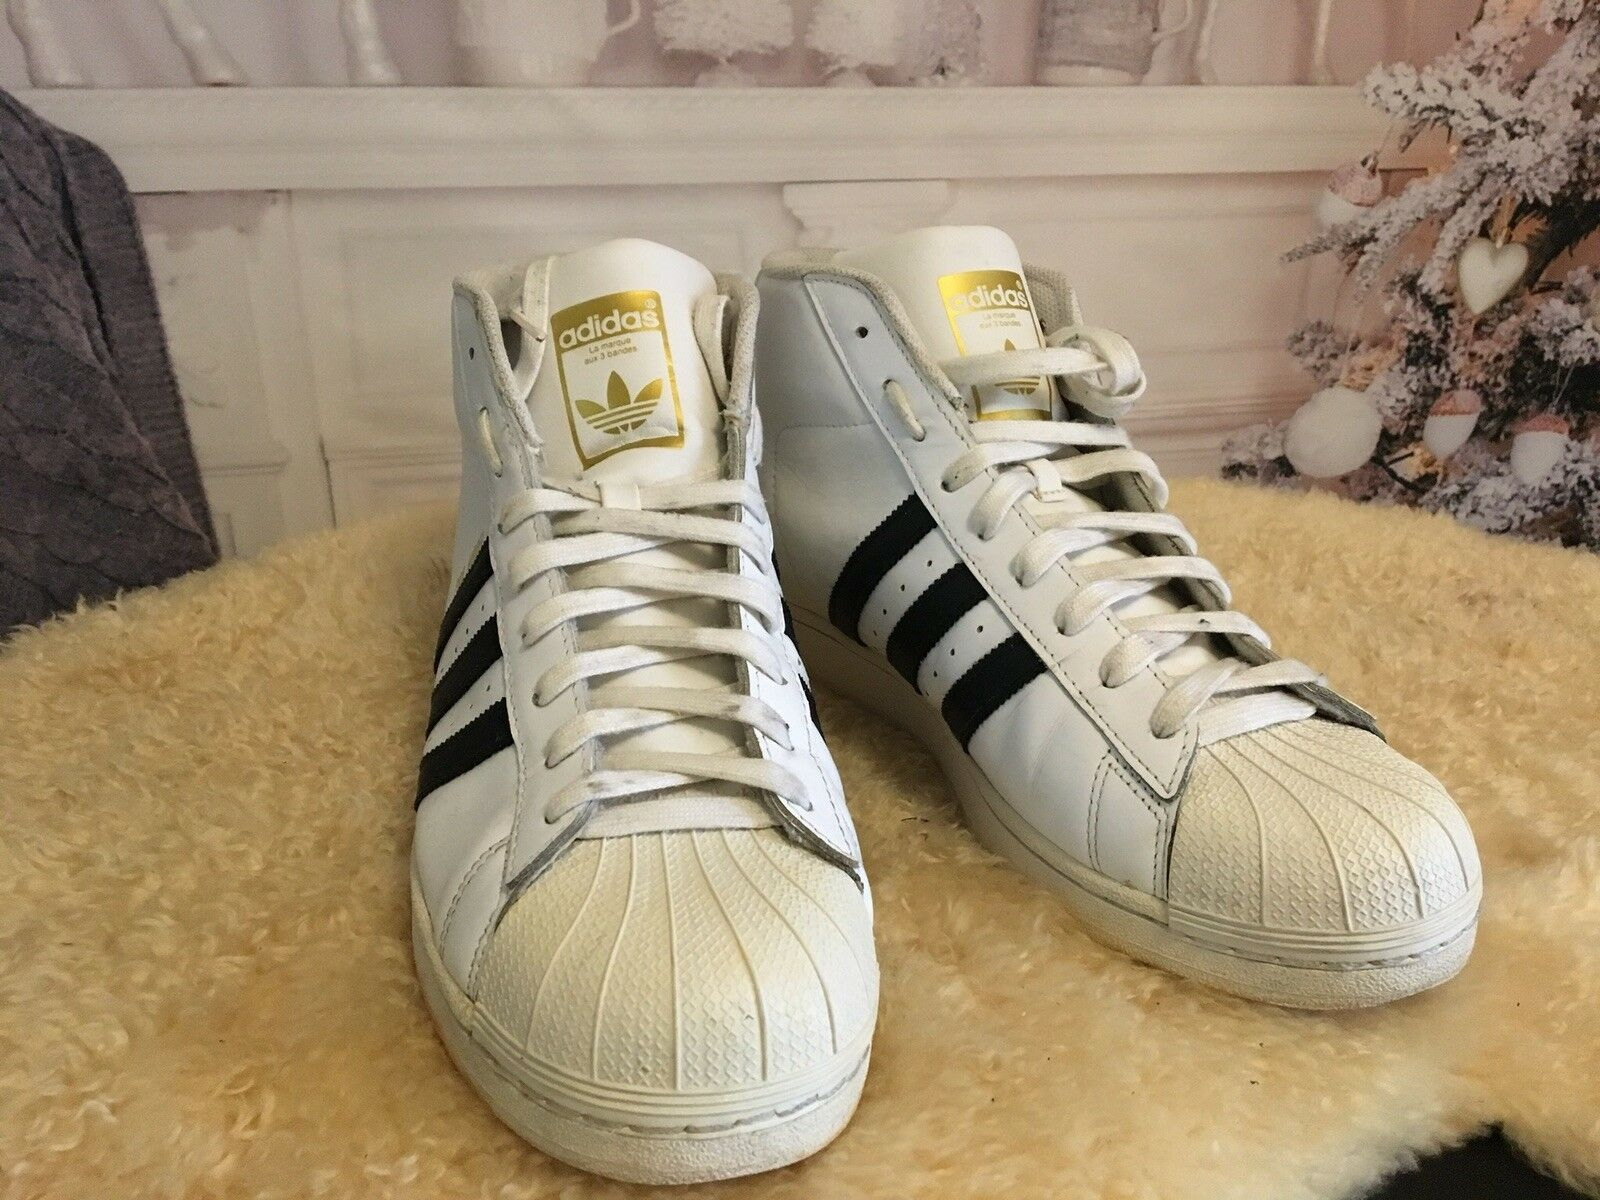 69f38f2d6 ADIDAS Pro Model La Marque Aux 3 Bandes HighTop Sneakers 11 ½ Leather Men s  zohmpz4993-Athletic Shoes